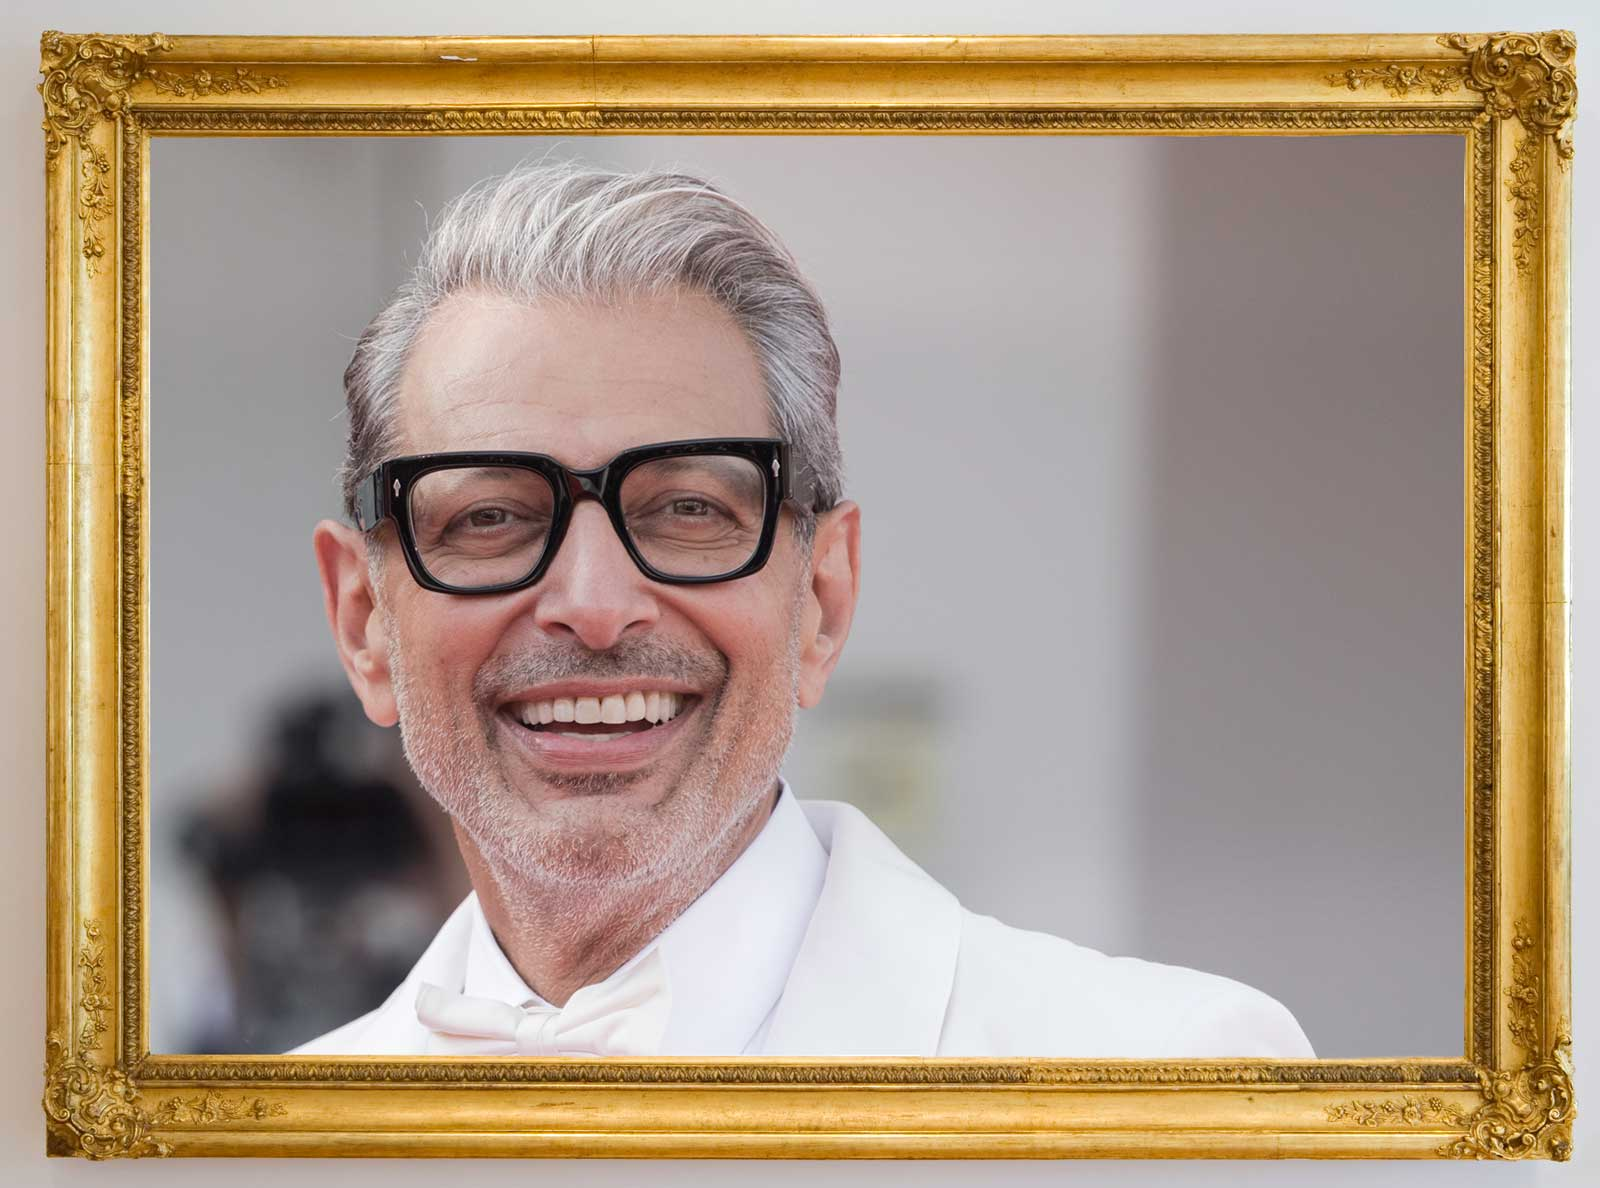 This Thrift Shop Put Photos of Jeff Goldblum in Every Single Picture Frame